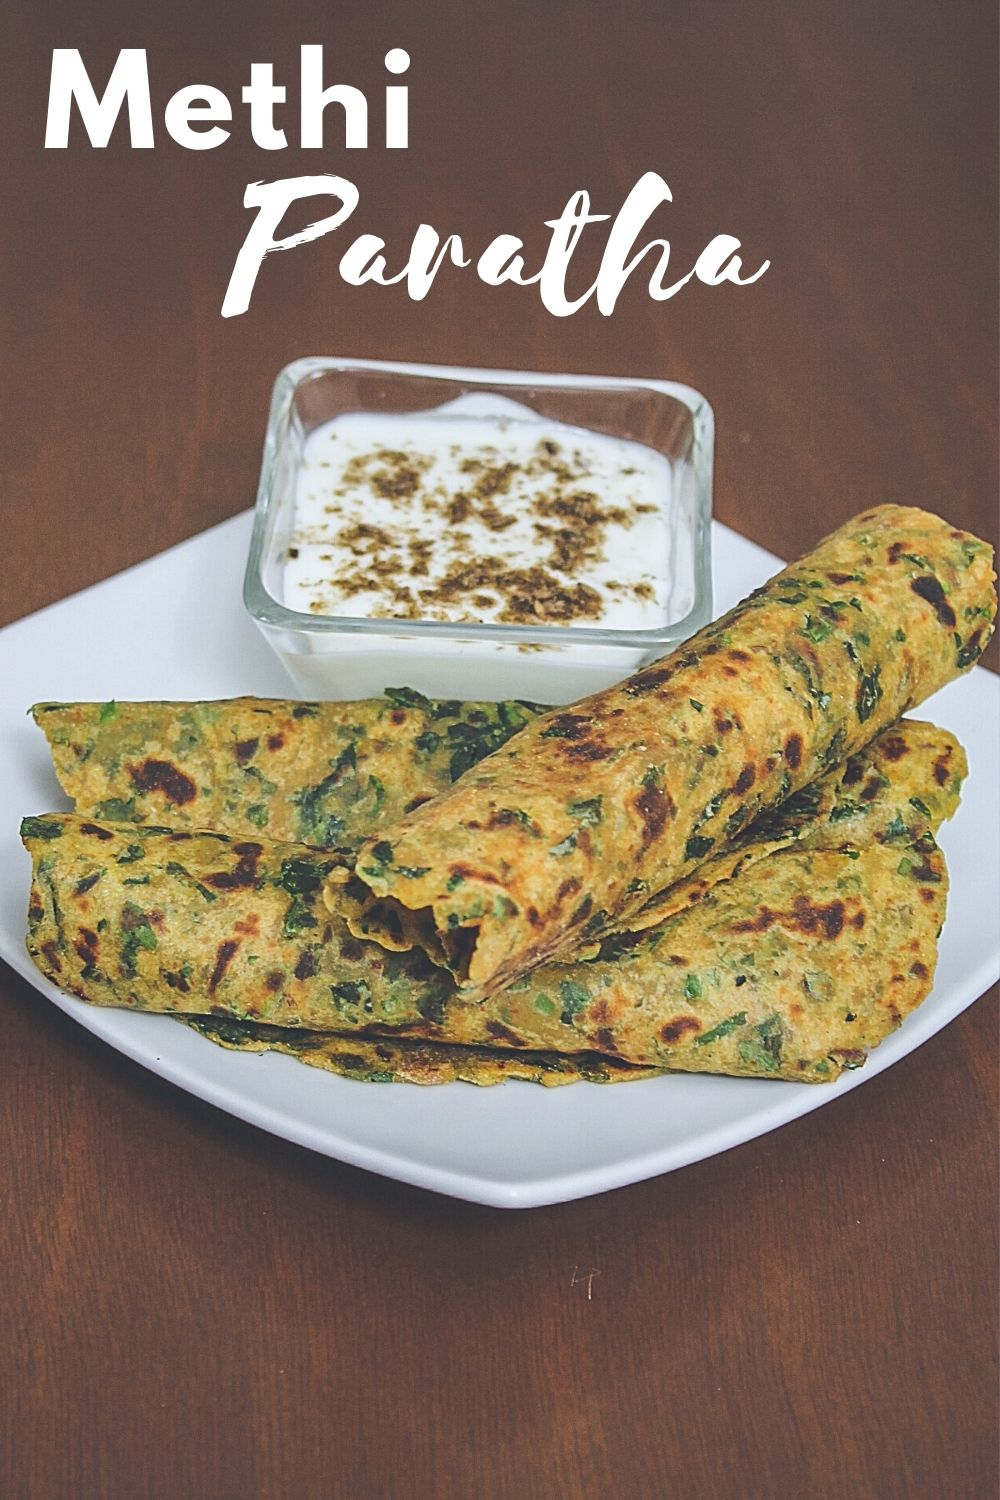 Methi paratha served with yogurt and text on the image for pinterest